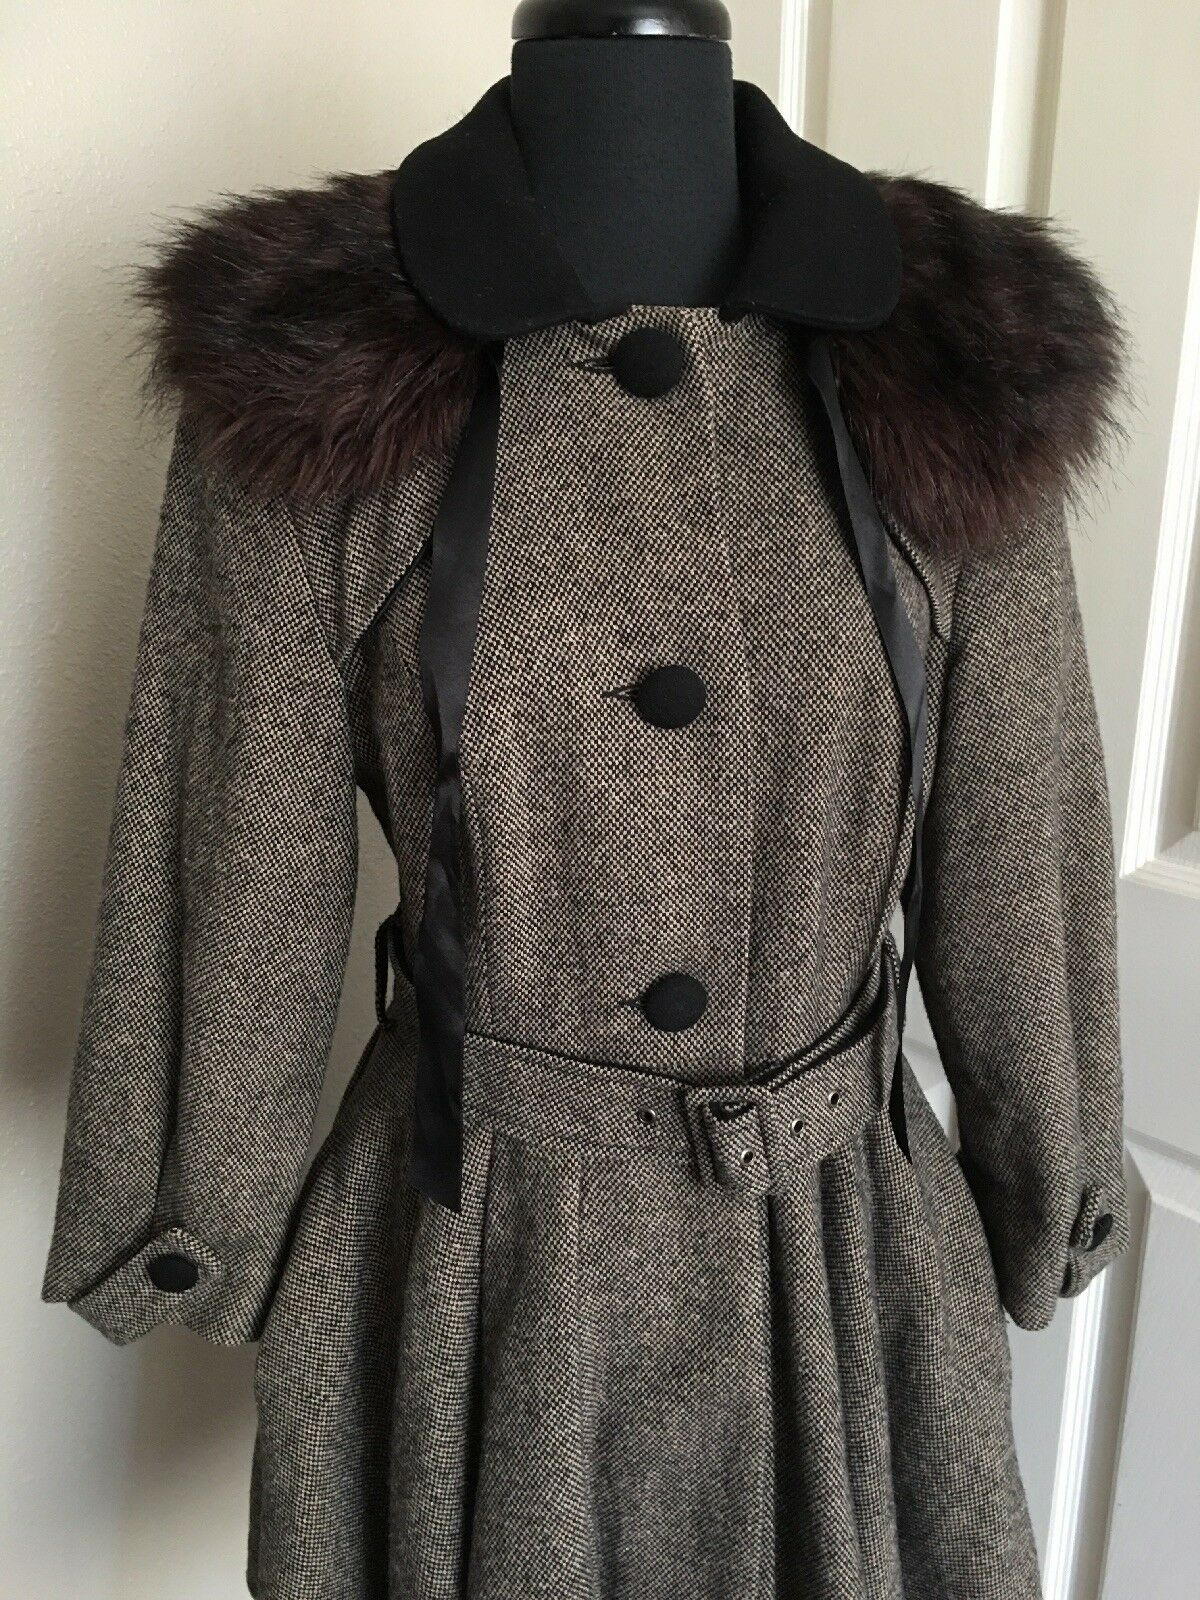 TOPSHOP FUR TWEED NEW HEAVY DUTY RARE FULLY LINED RARE DESIGN 12 USA